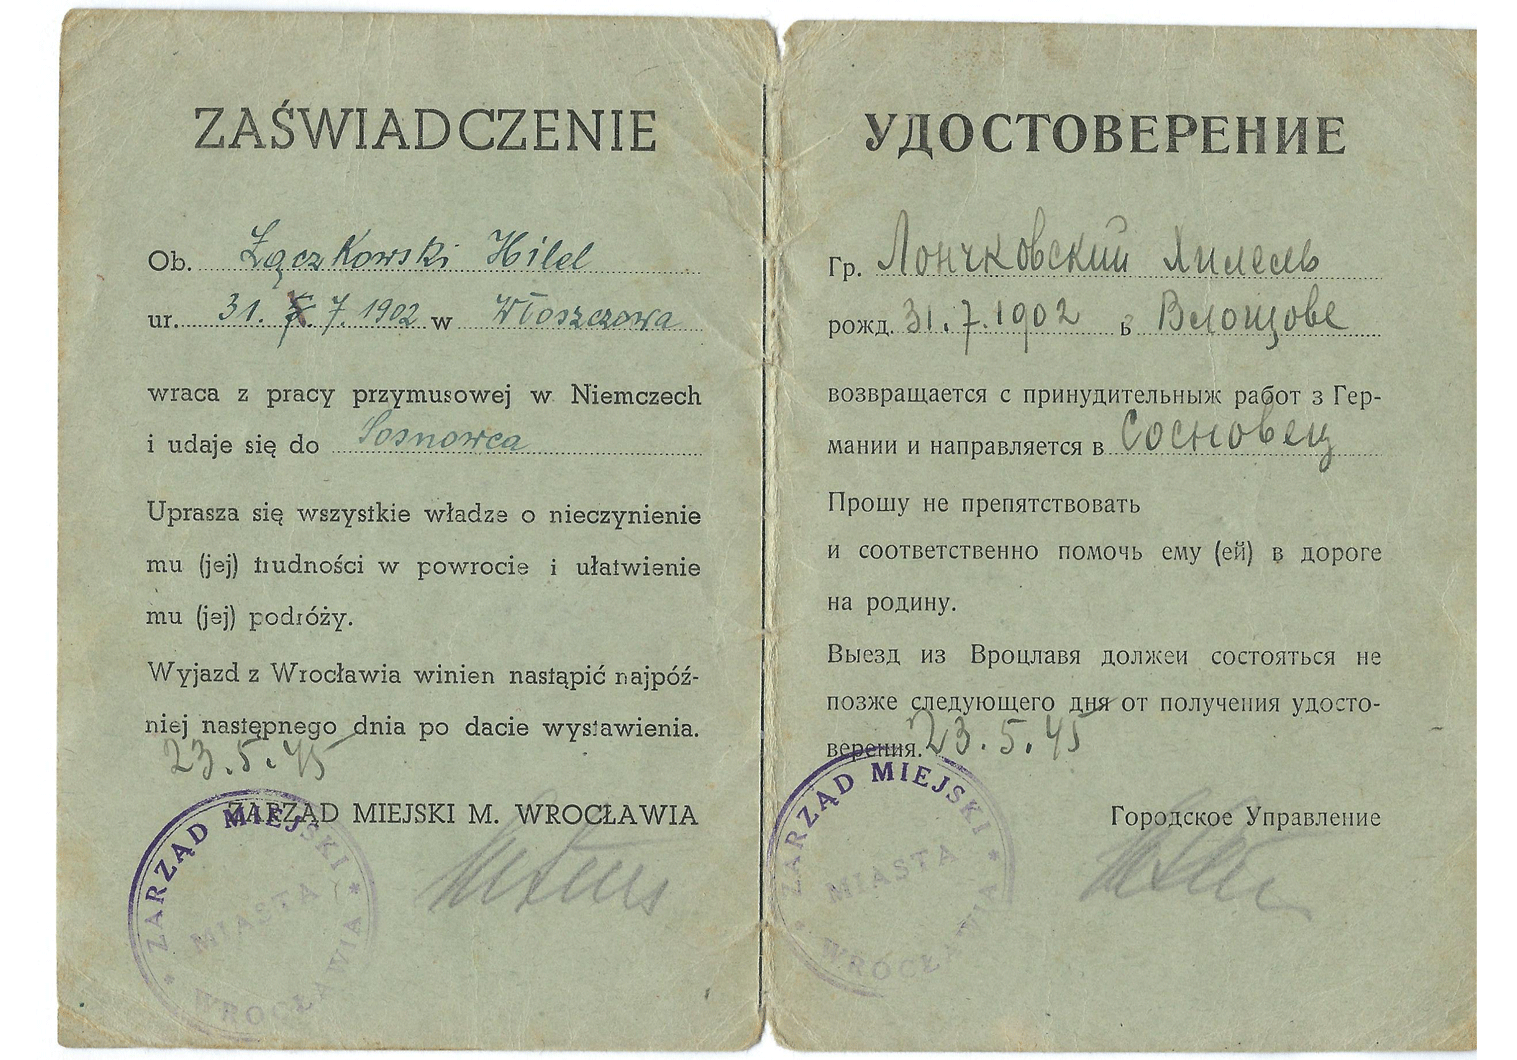 WW2 German deportation papers.